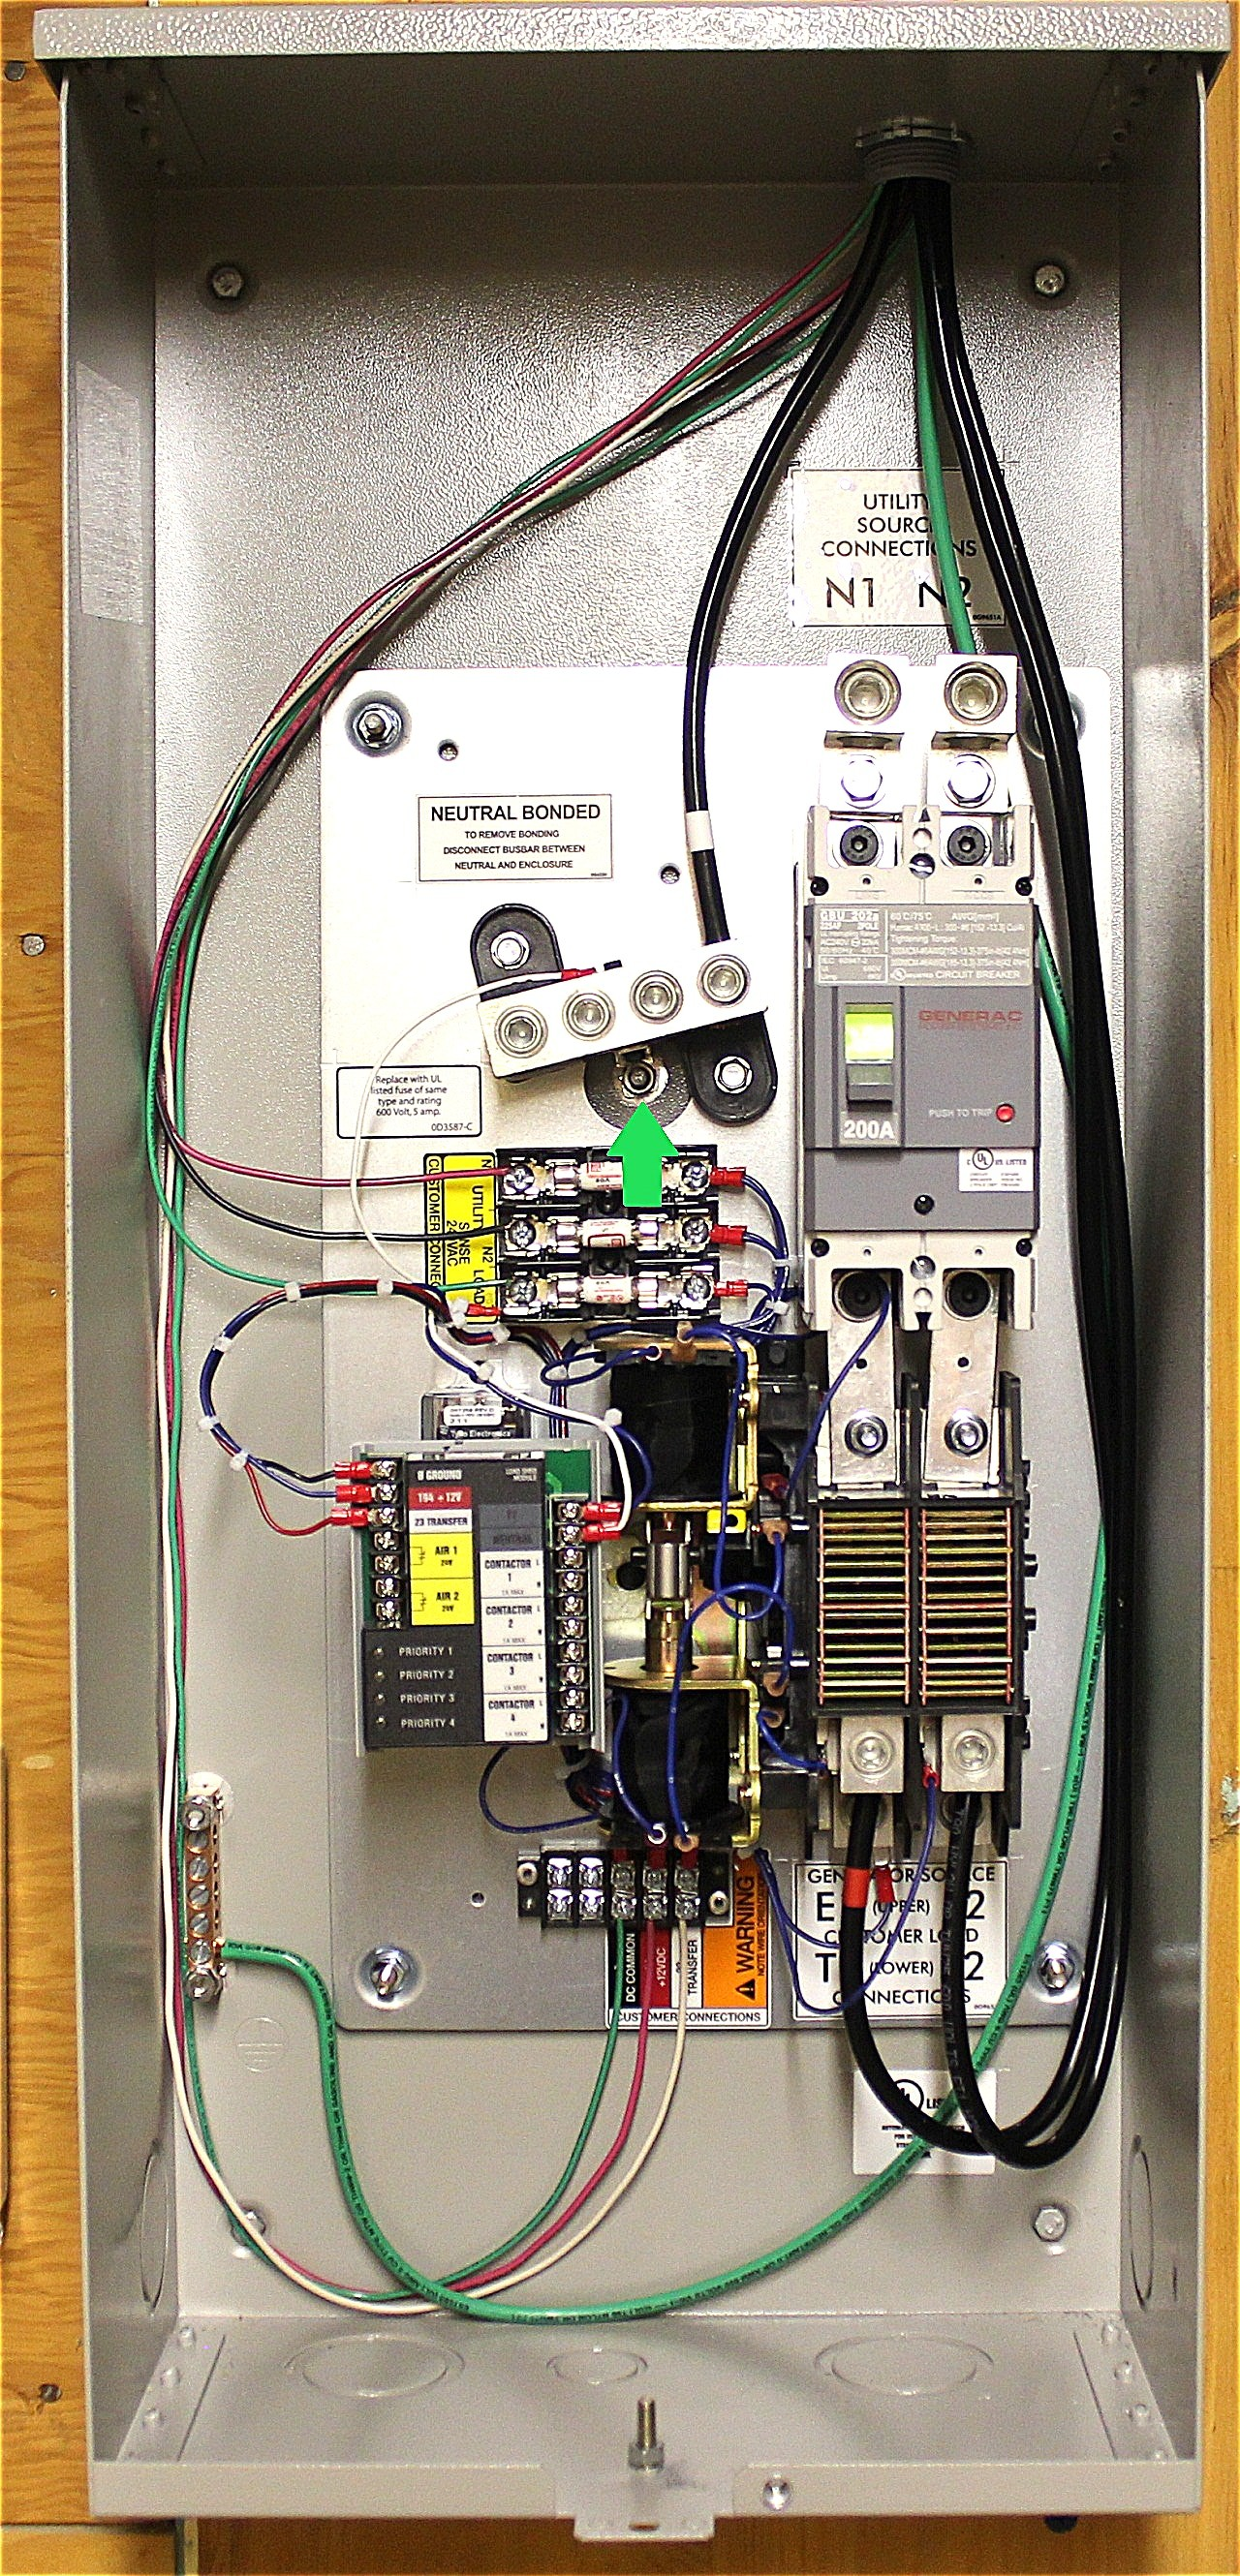 Generac Transfer Switch Wiring Diagram Generac Automatic Transfer Switch Wiring Diagram Delightful Bright Of Generac Transfer Switch Wiring Diagram